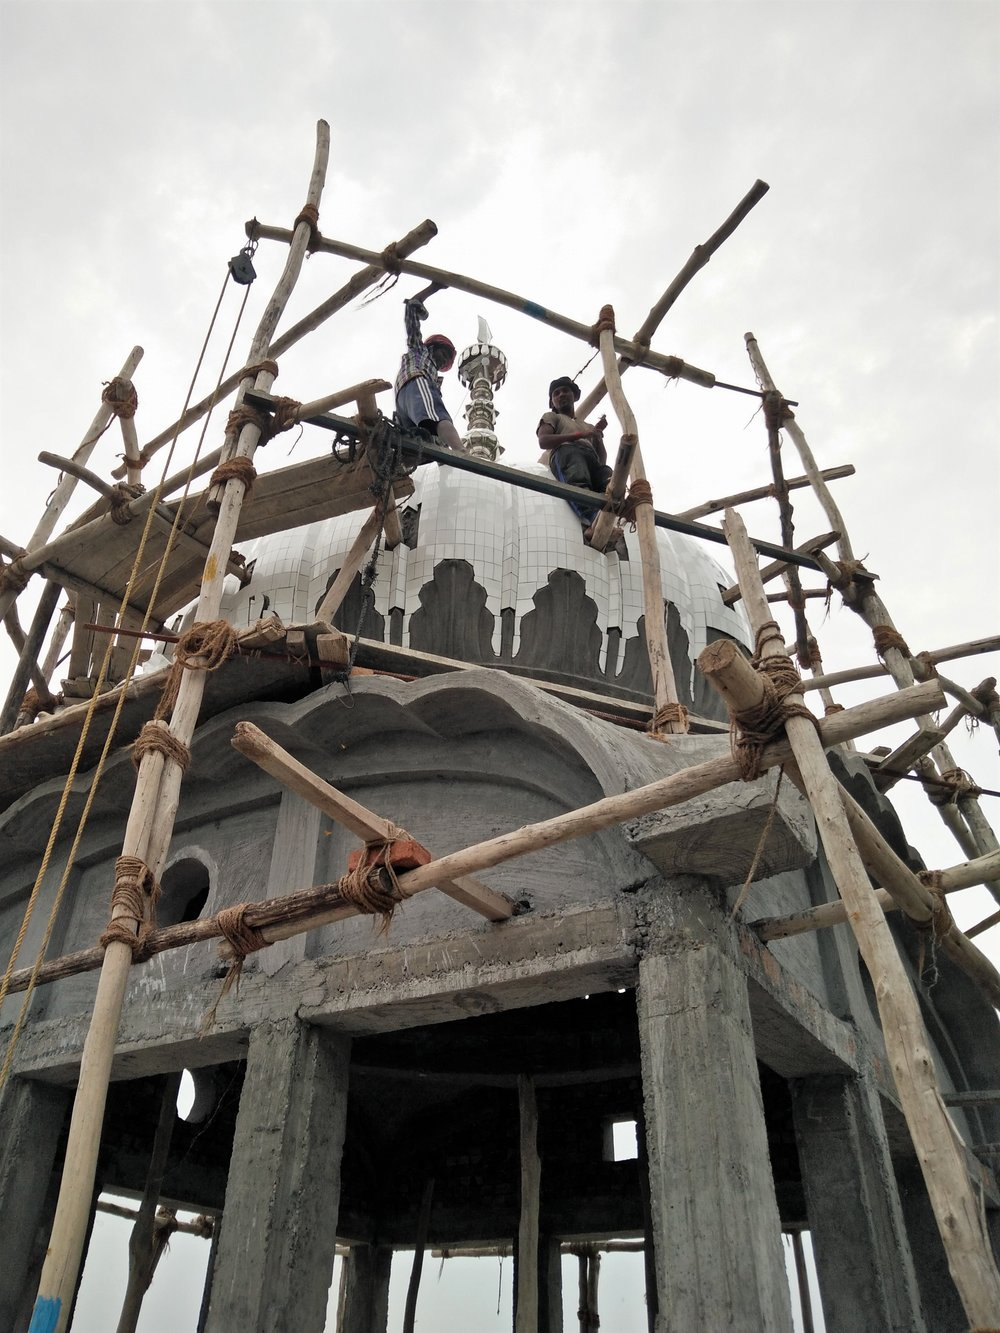 Migrant workers build Gurudwara dome. Credit: Ankur Jayaswal